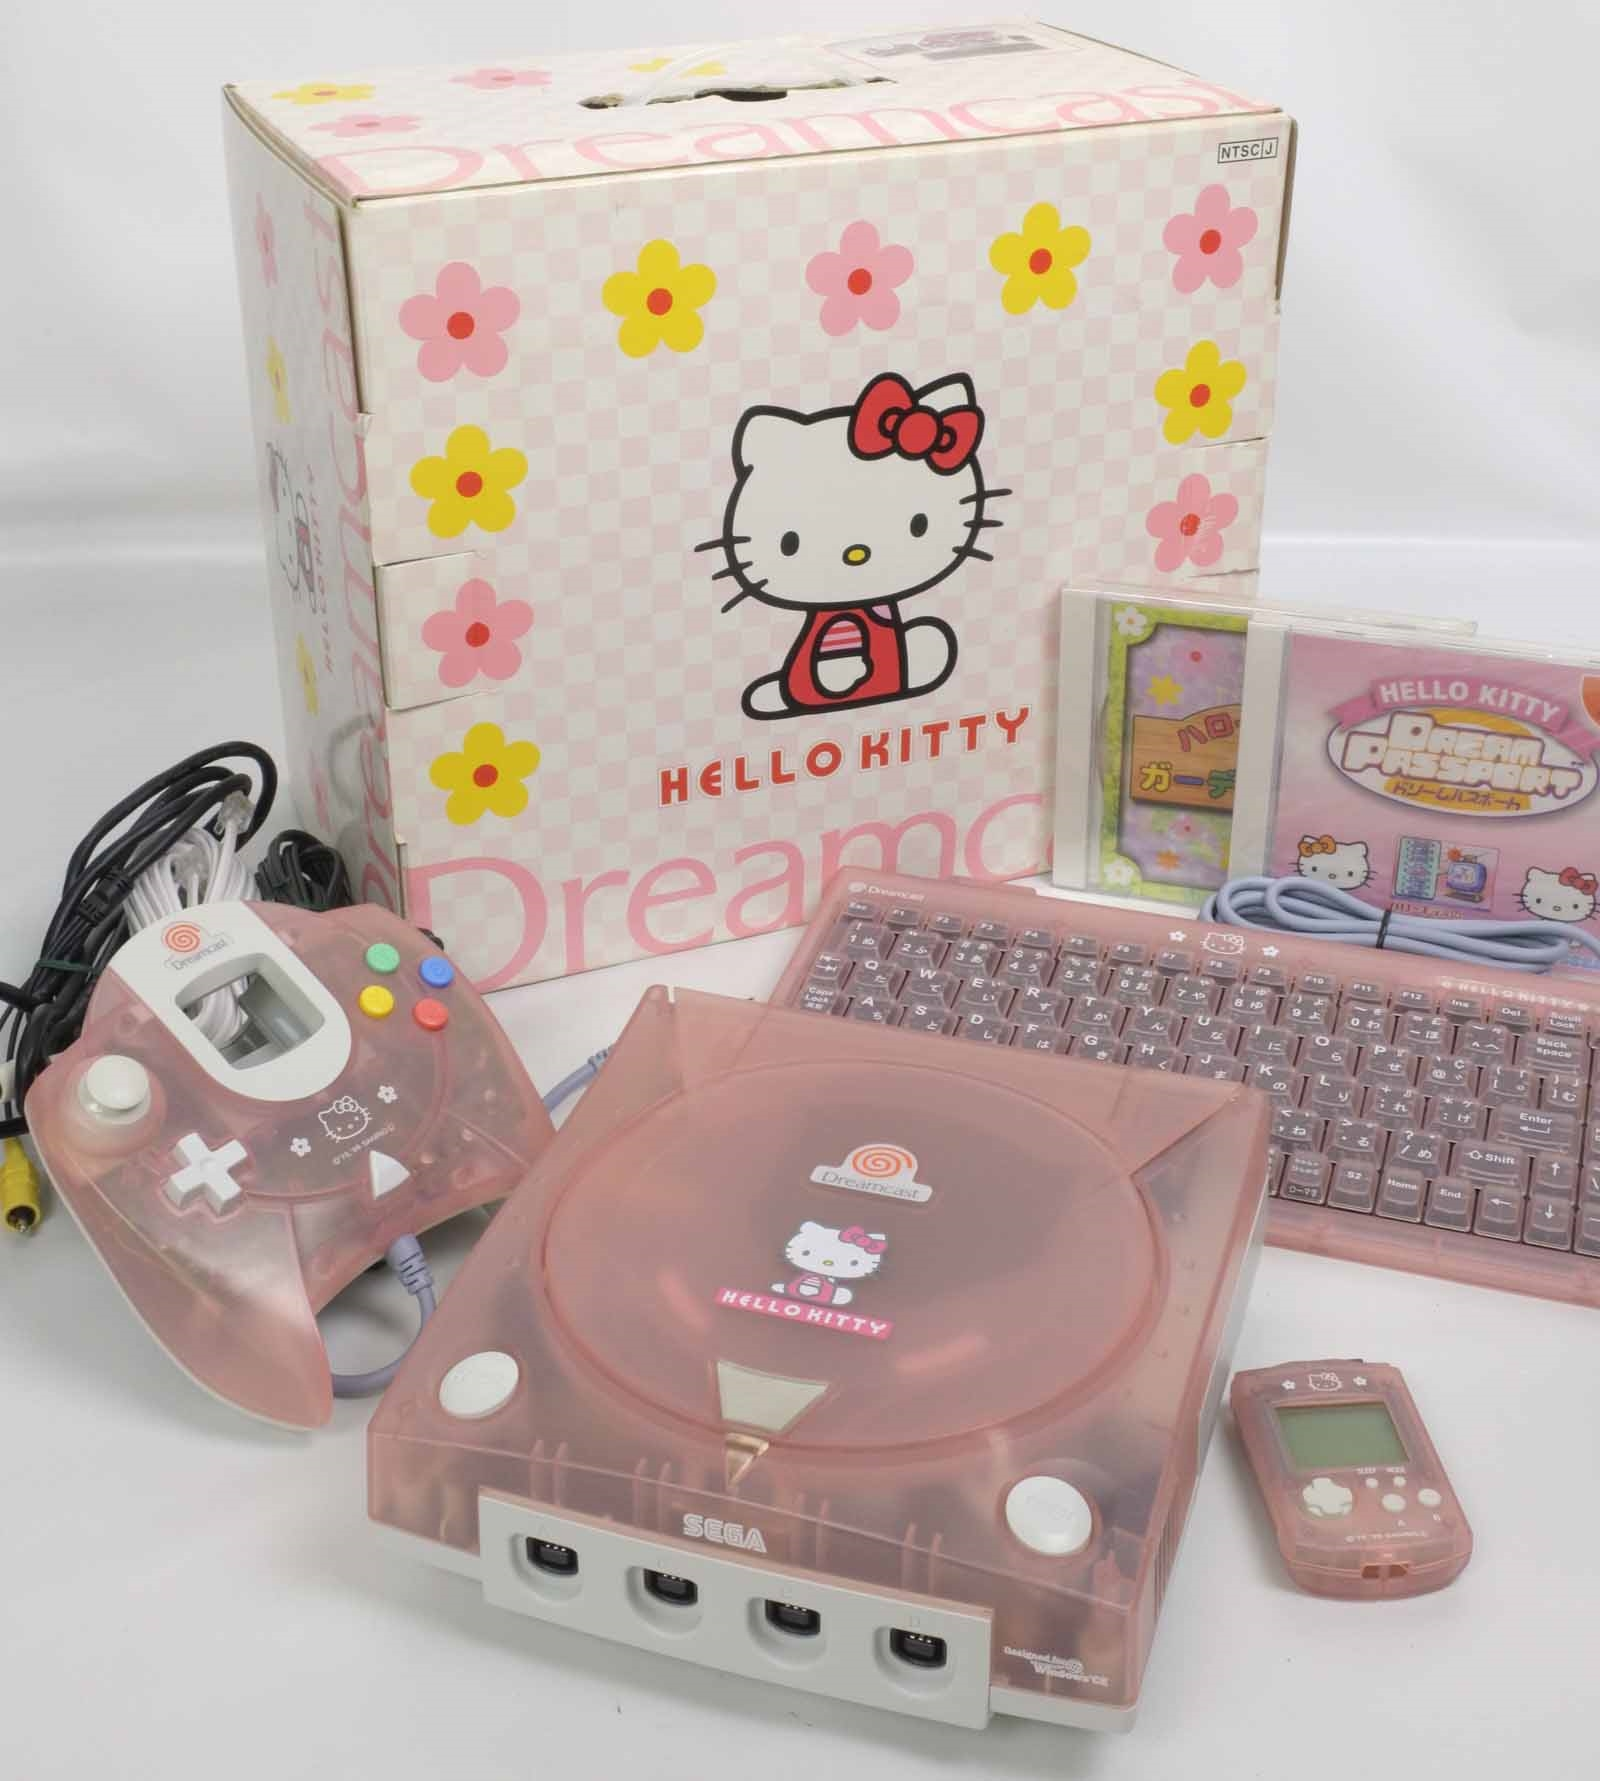 """Dreamcast DC HELLO KITTY PINK Console System Boxed Tested 019018033921 """"NTSC-J"""" 